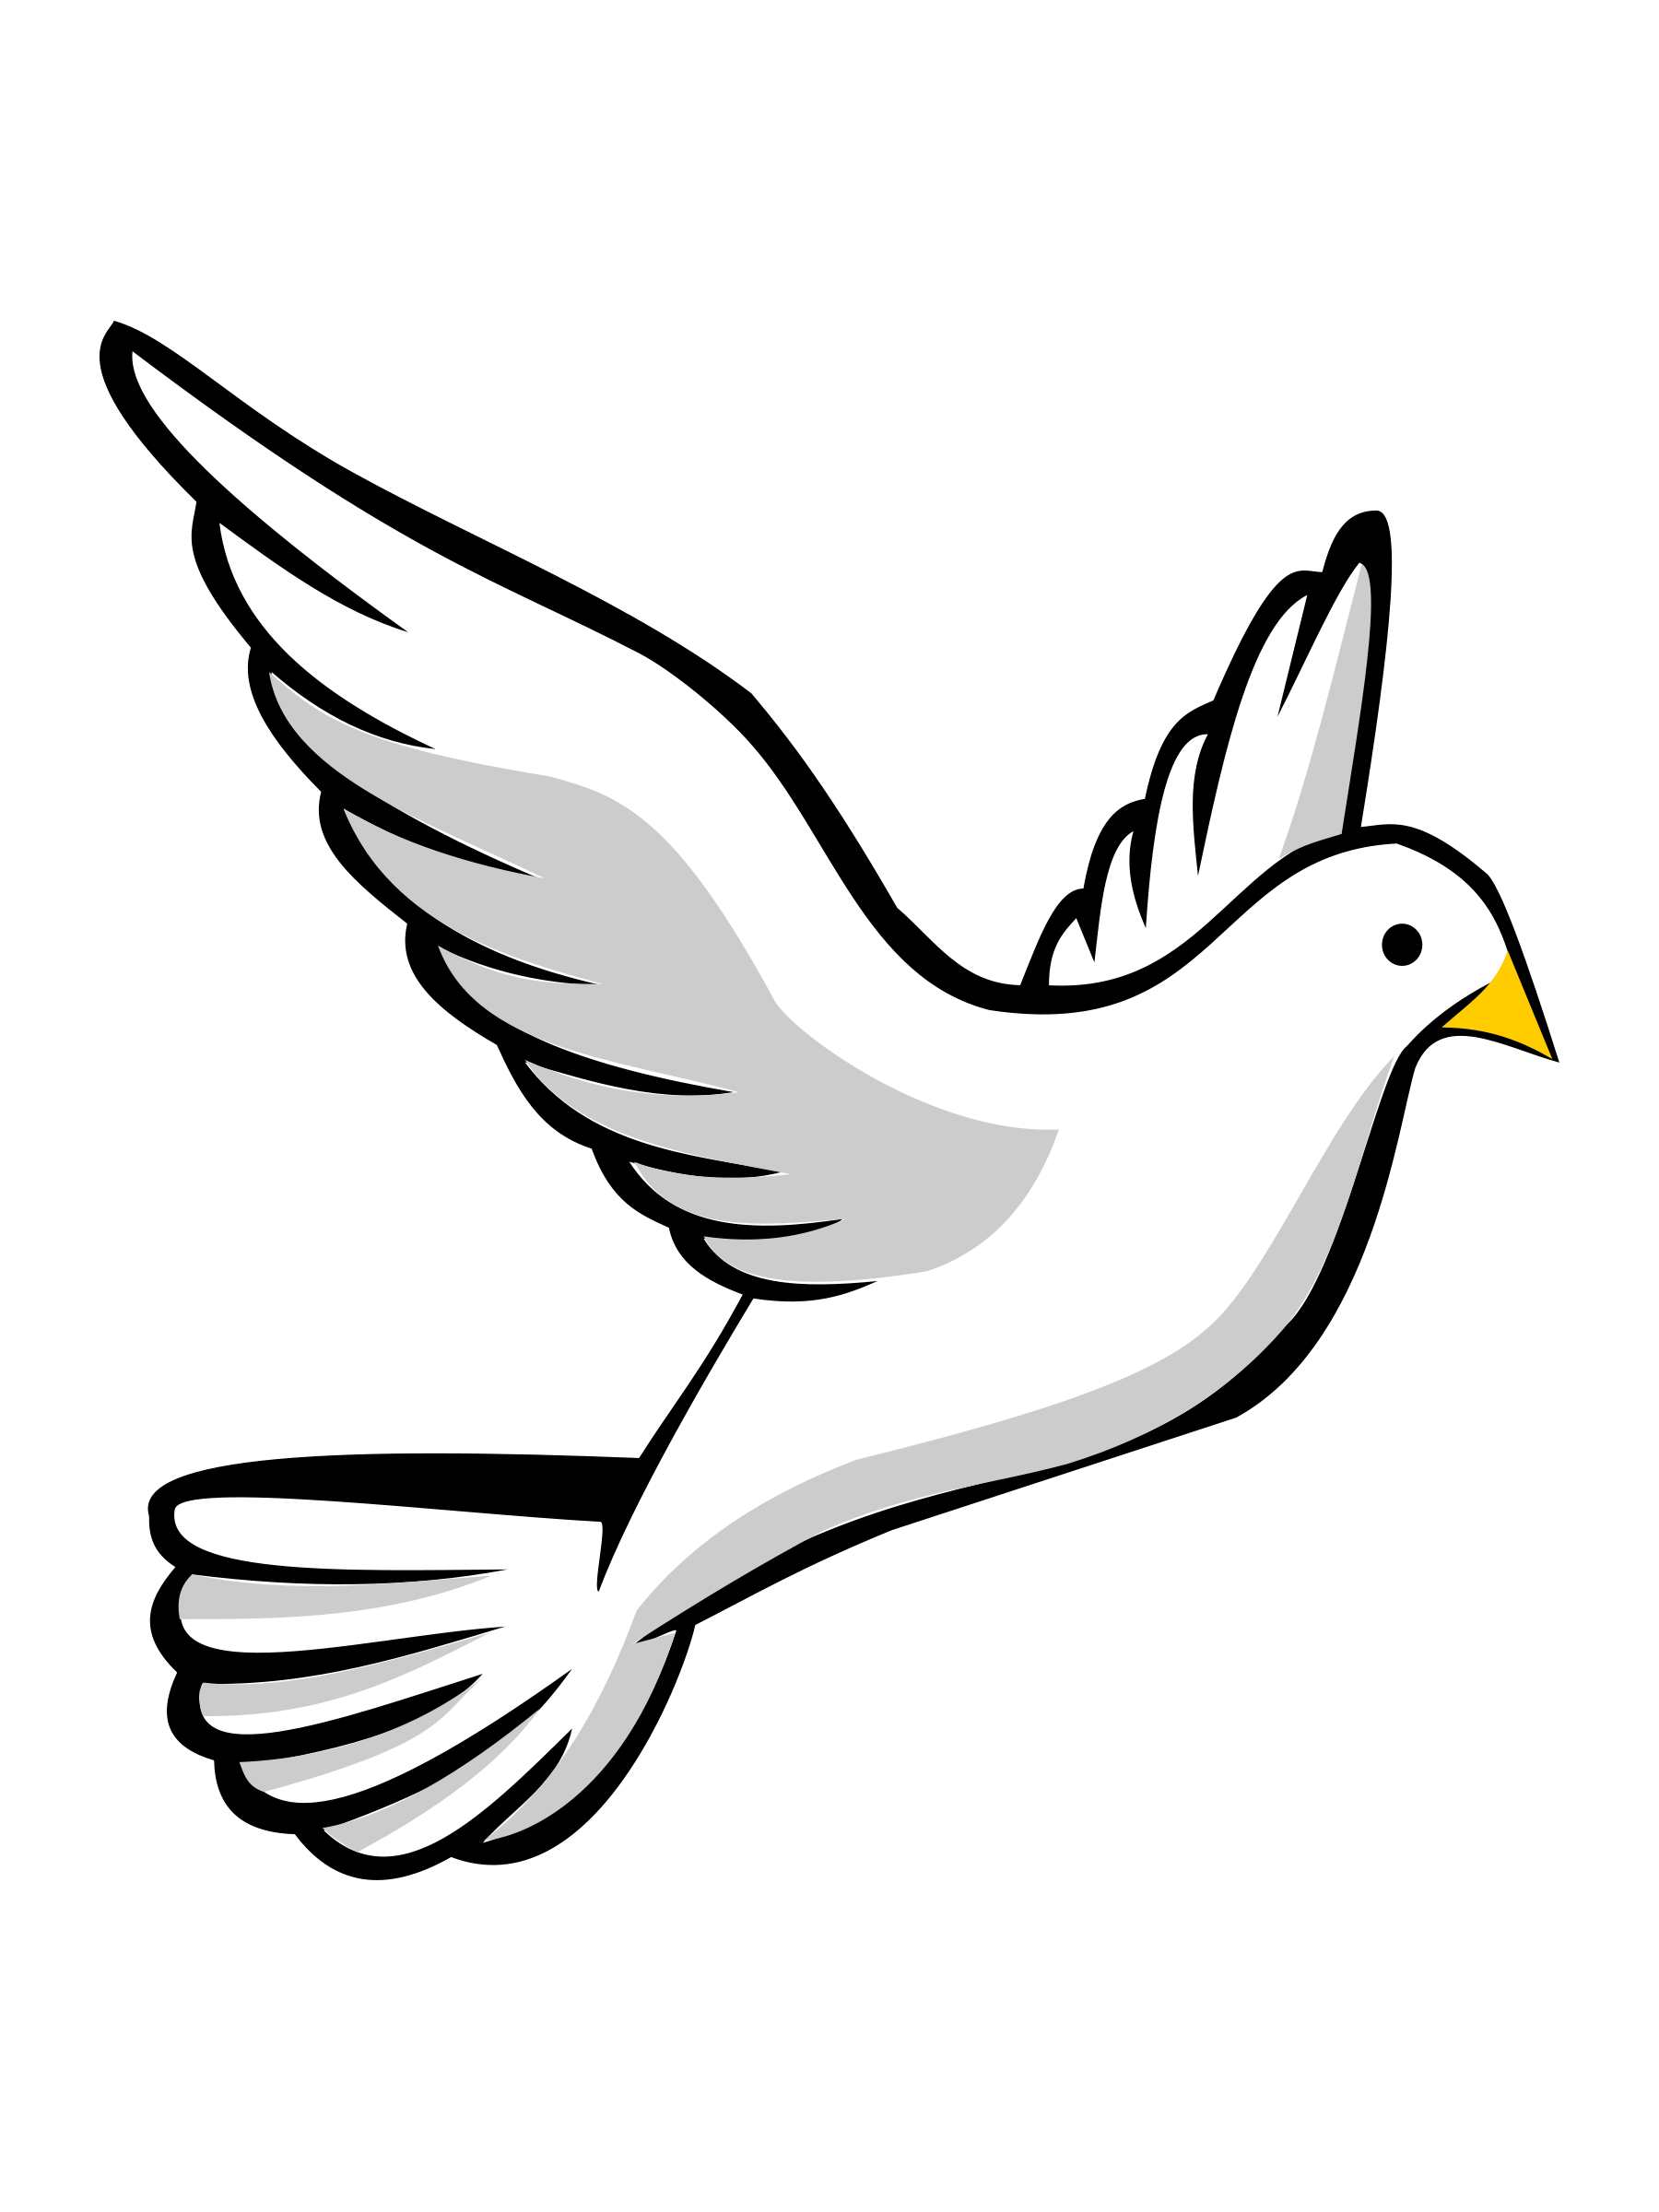 1800x2400 Holy Spirit Dove Clipart Black And White Free 2